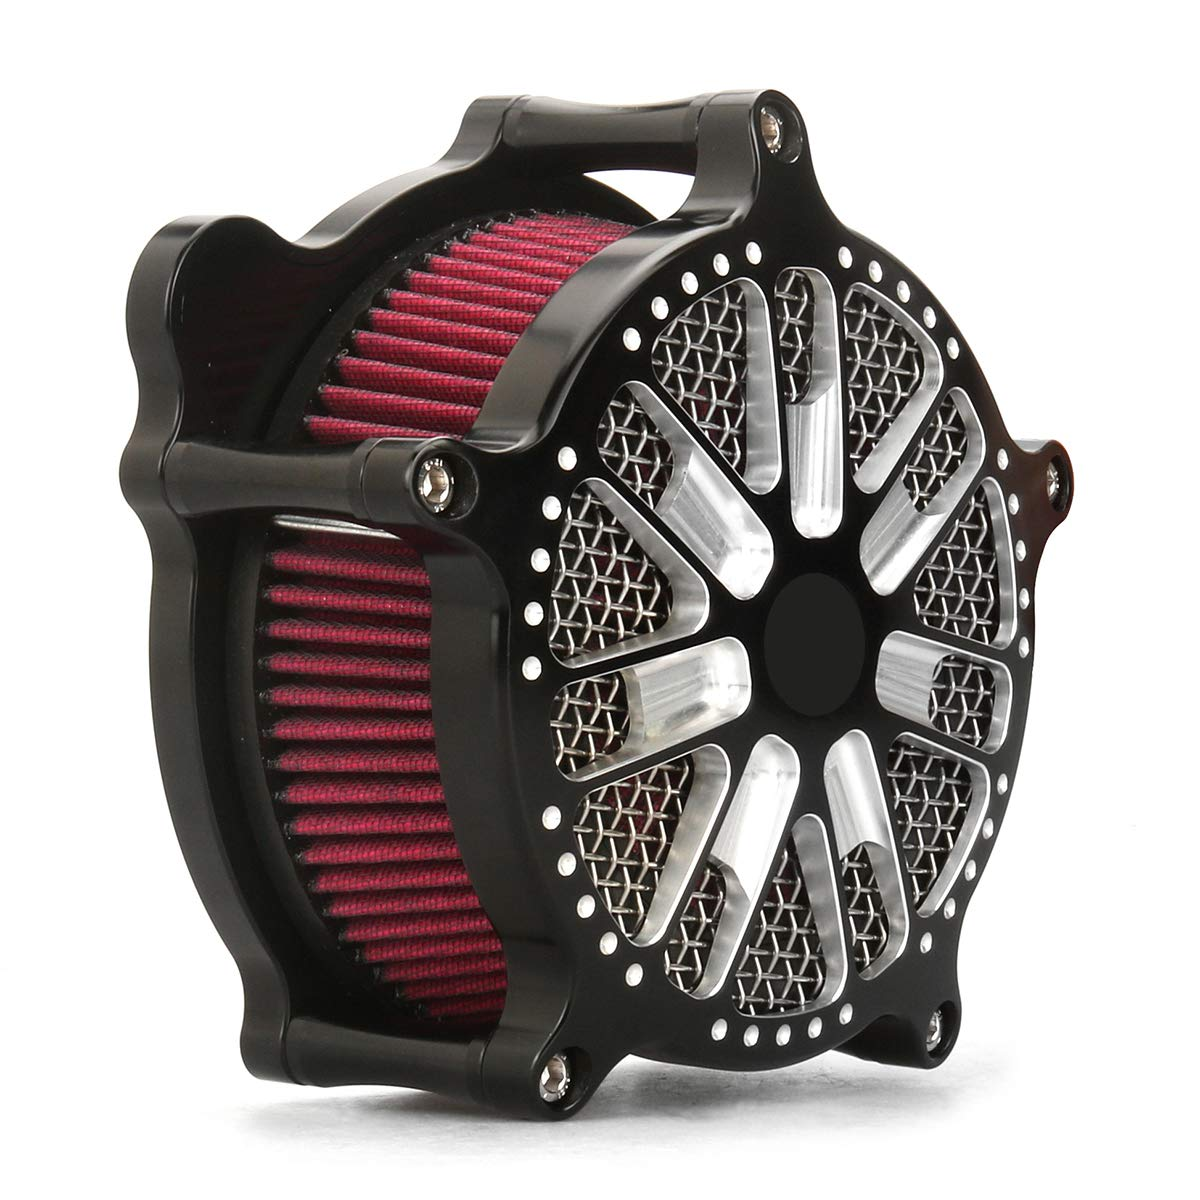 Black Vintage Air Cleaner electra glide flht fltr touring 00-07,air cleaner for softail 1993-2015 dyna air cleaners